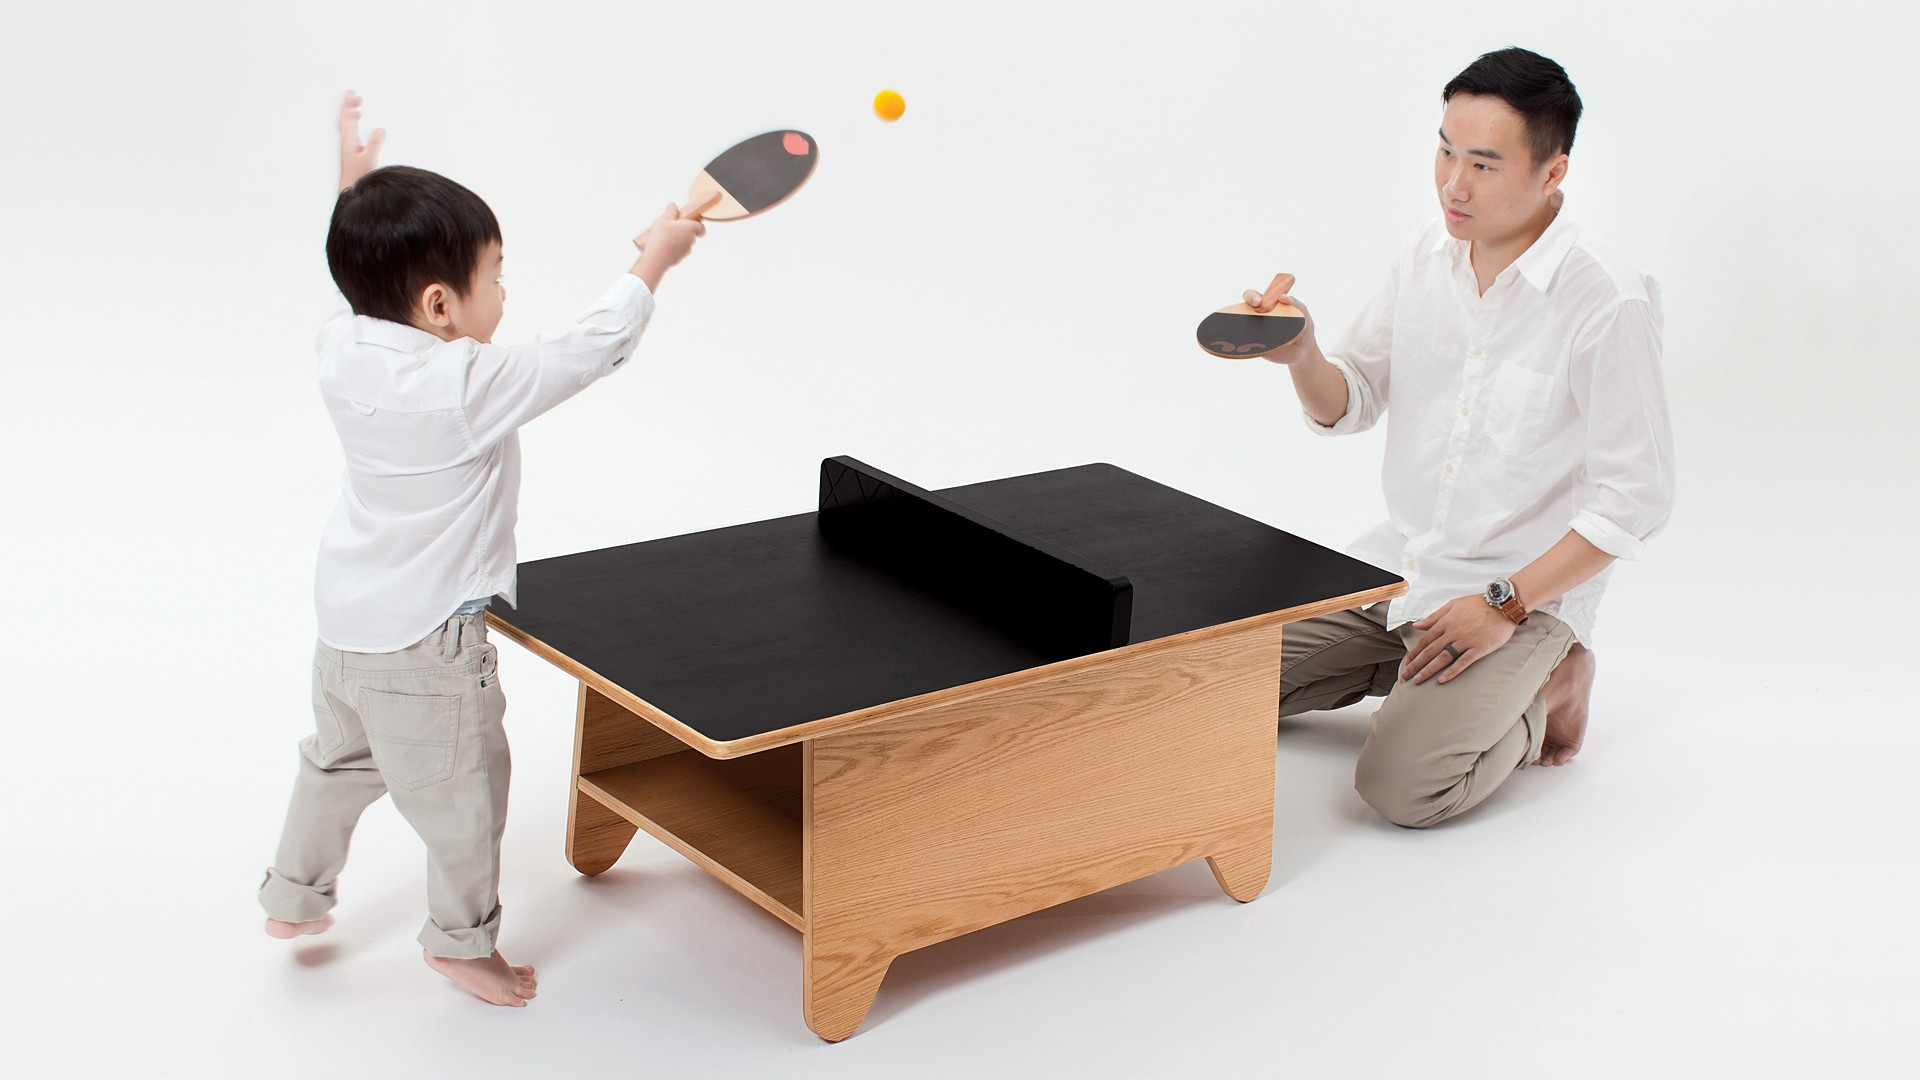 Stiga t8612 legacy ping pong table